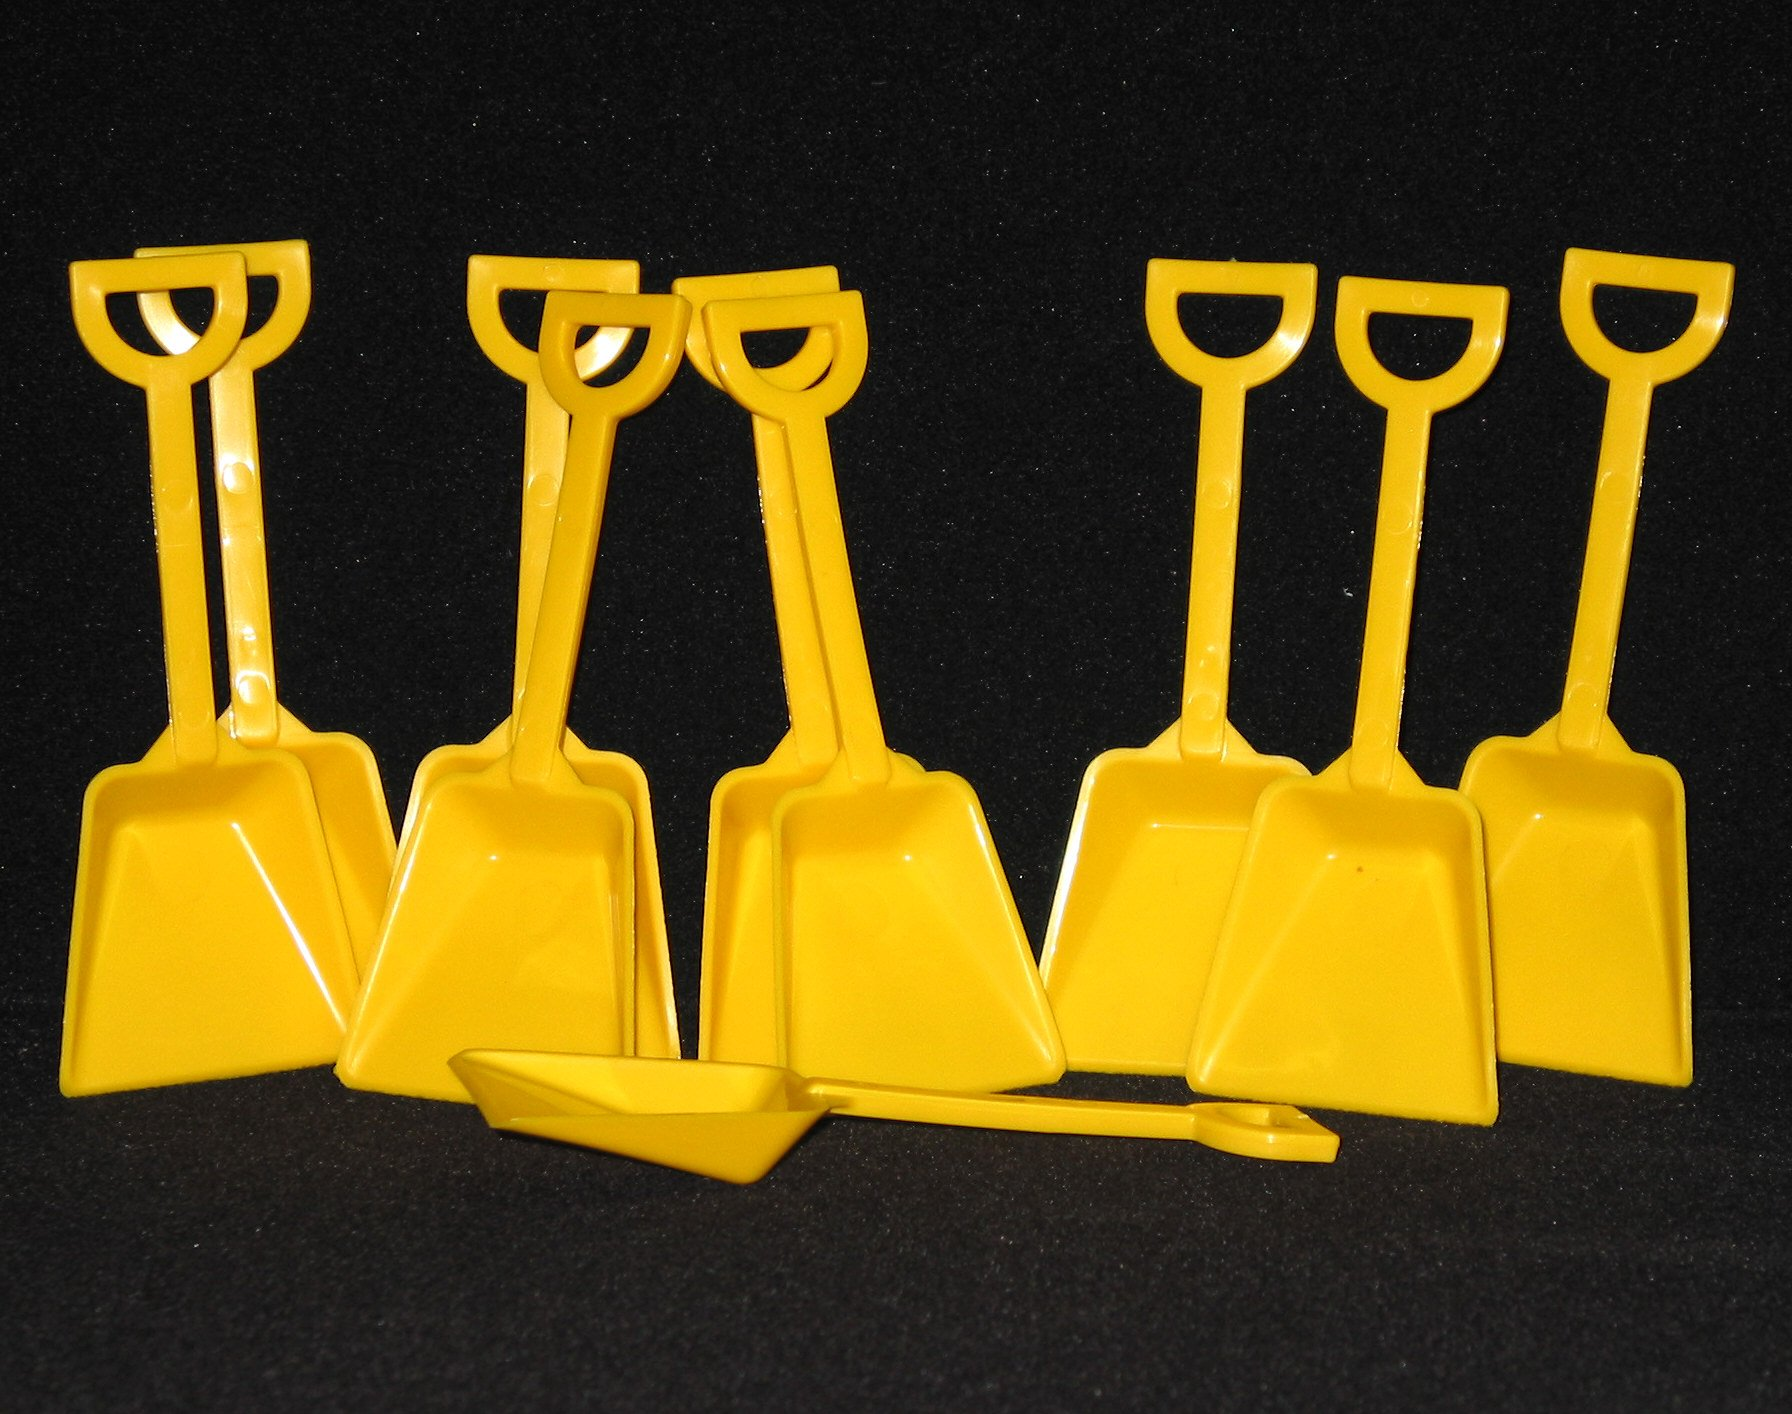 Small Toy Plastic Shovels Wholesale Lot, Pack 500, 7 Inches Tall, Color Yellow